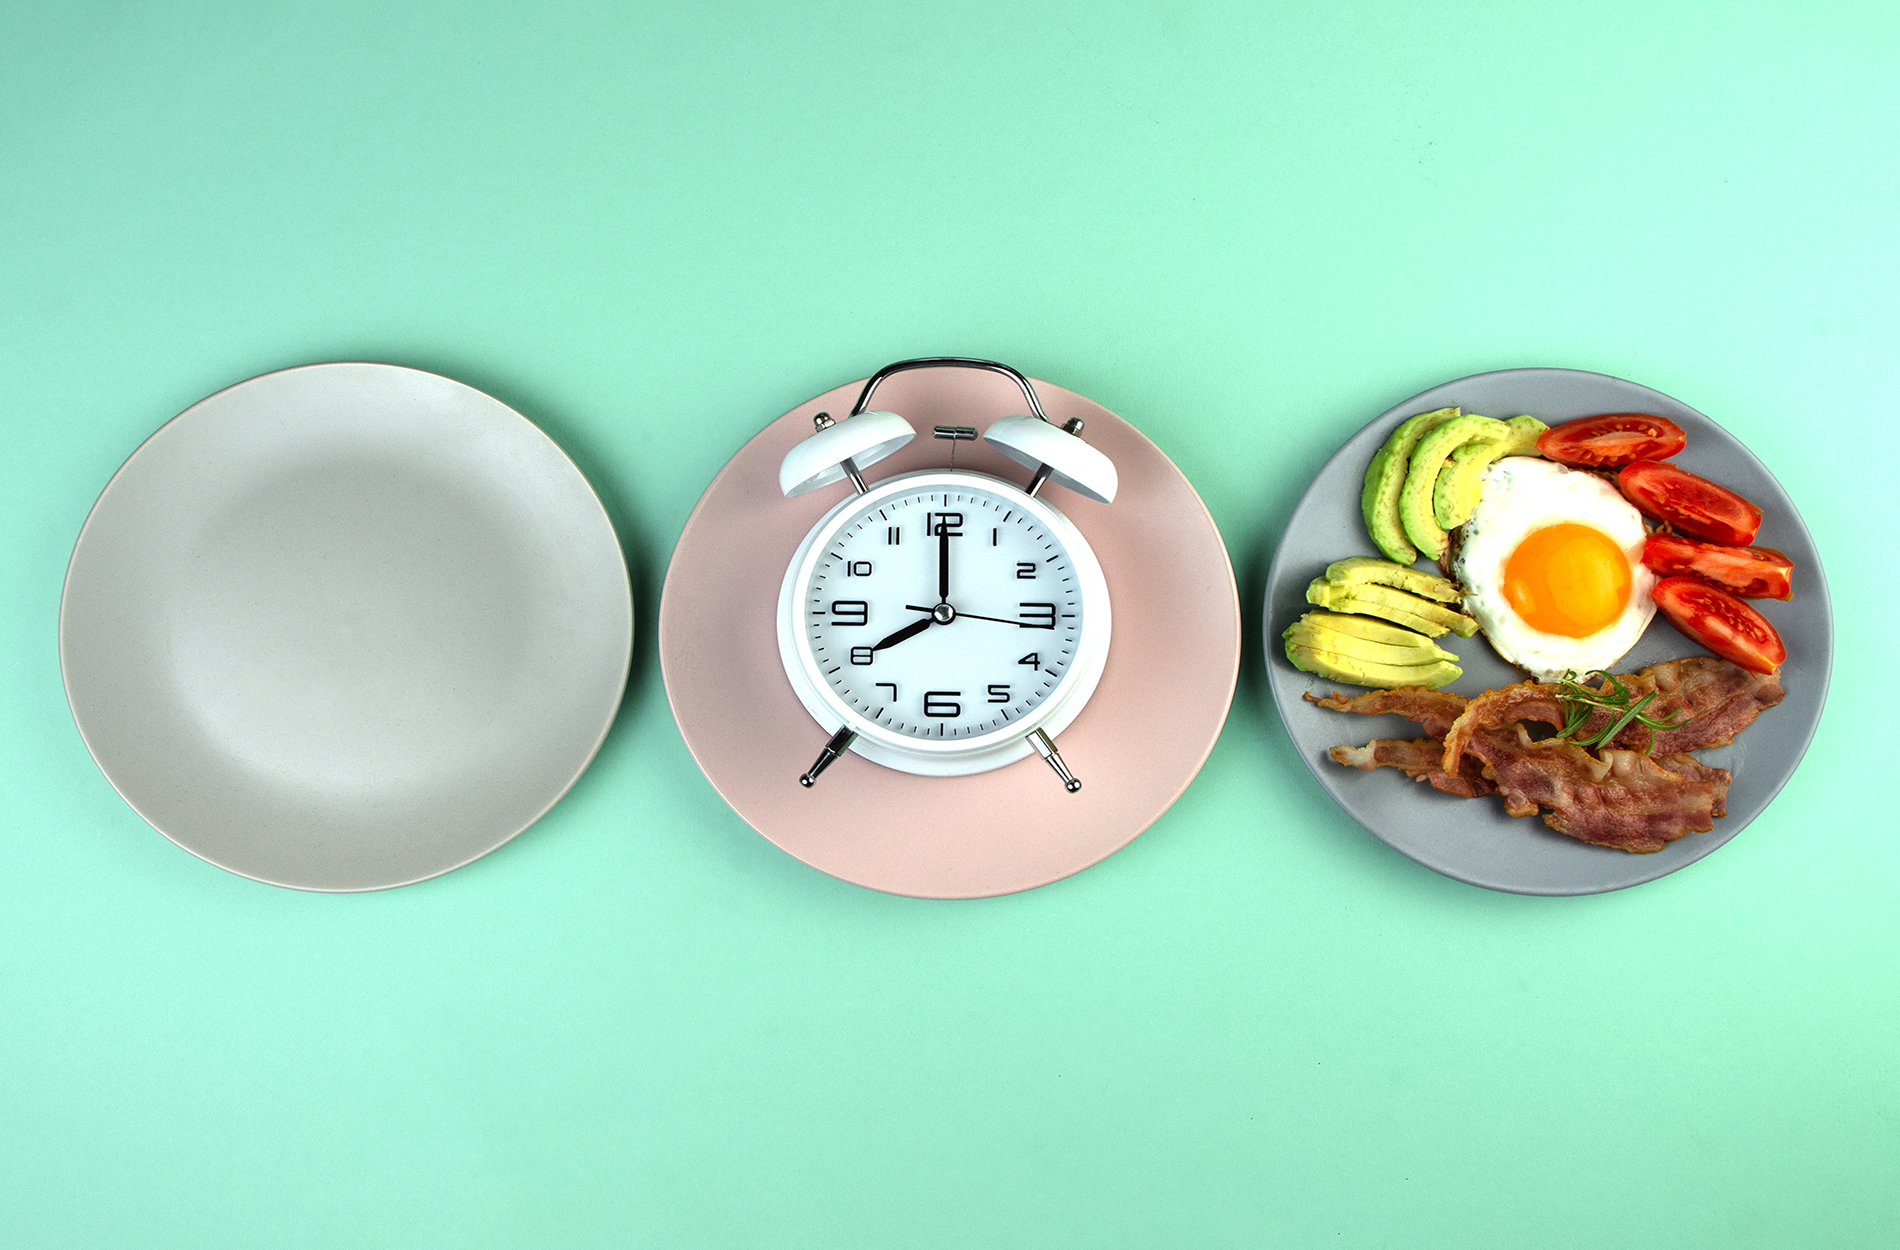 Empty plate, clock, full plate